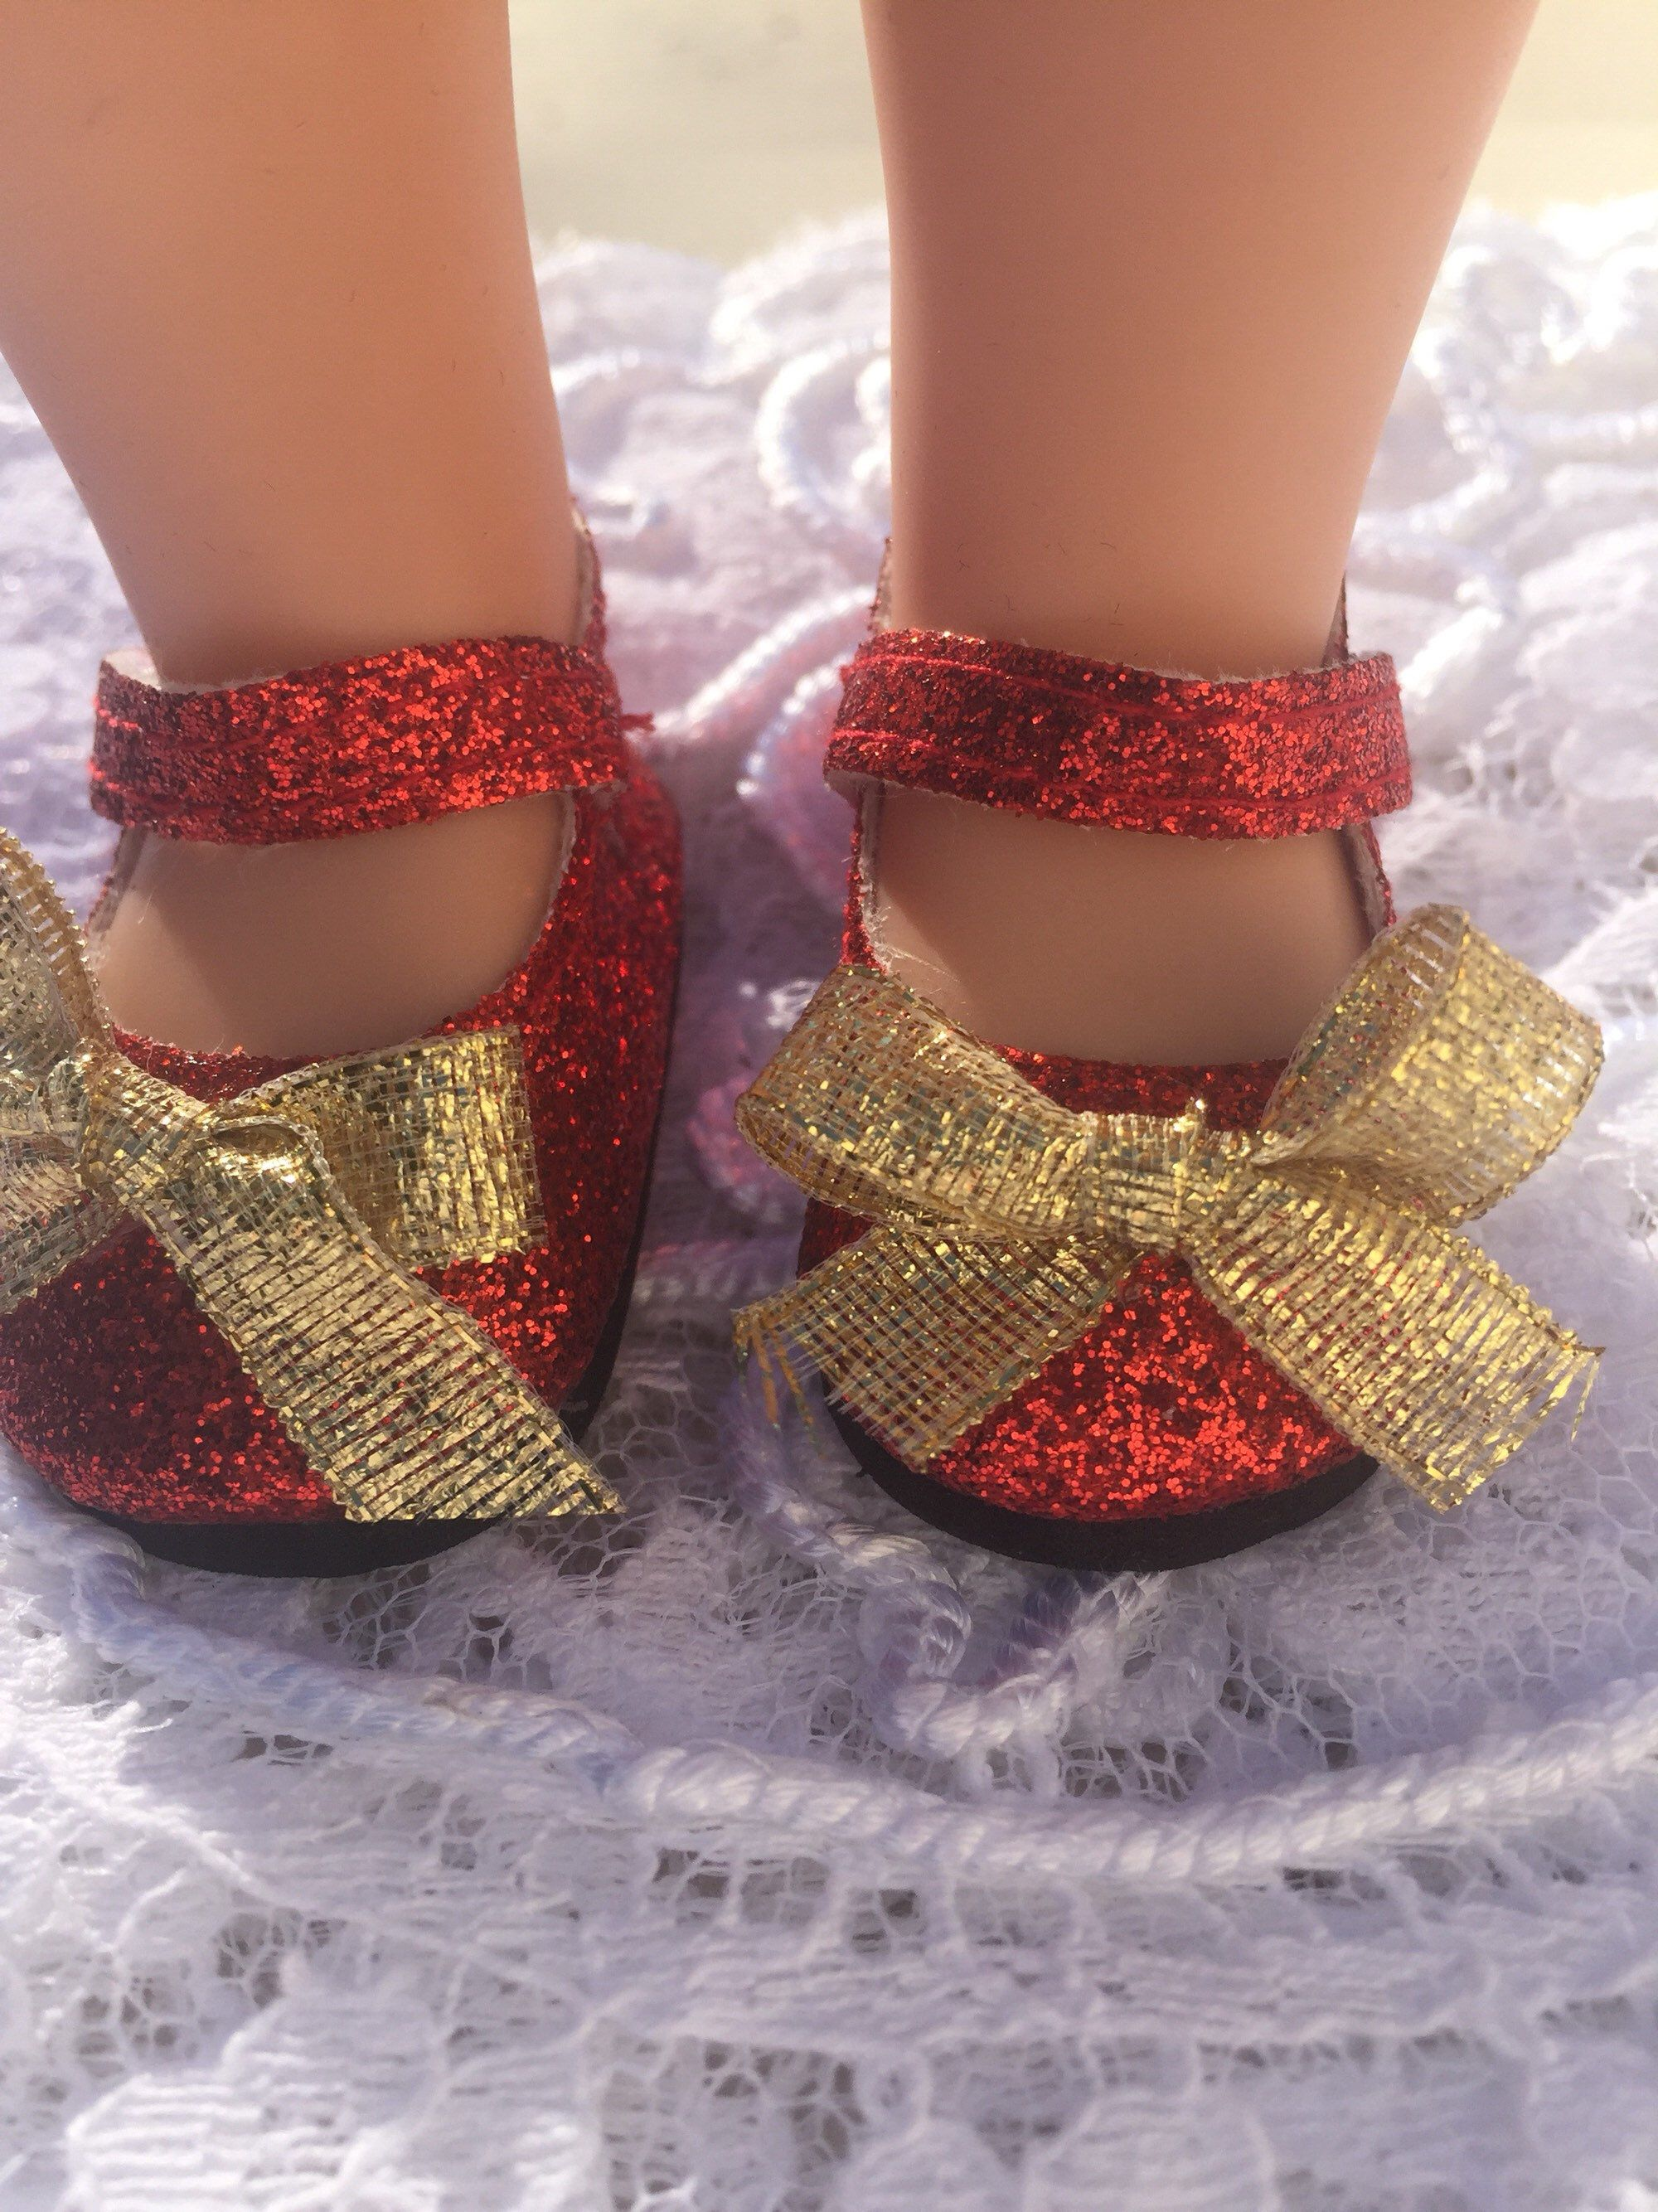 36ba40176953 ... addition to my #etsy shop: 14.5 red sparkly doll shoes fits dolls like  American girl wellie wishers handmade accessories Mary Jane flats with gold  bows